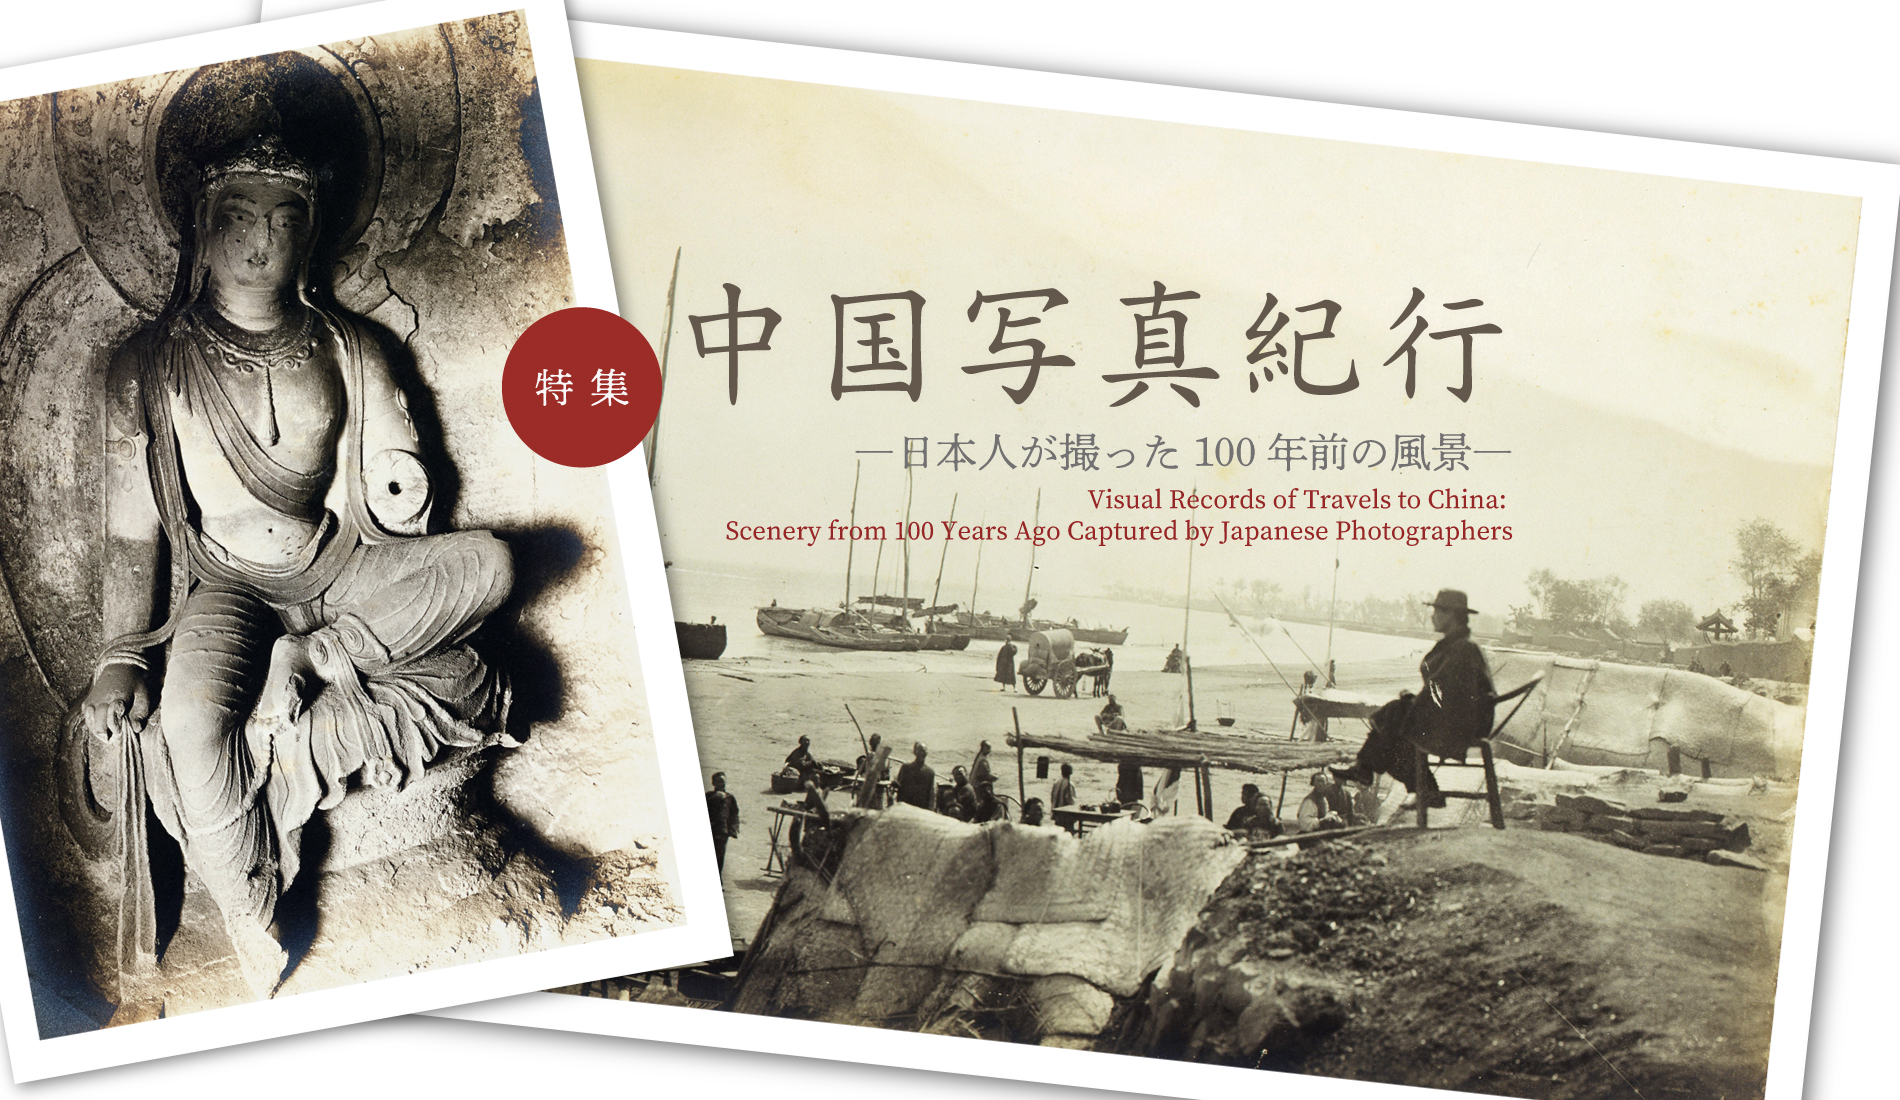 Visual Records of Travels to China: Scenery from 100 Years Ago Captured by Japanese Photographers